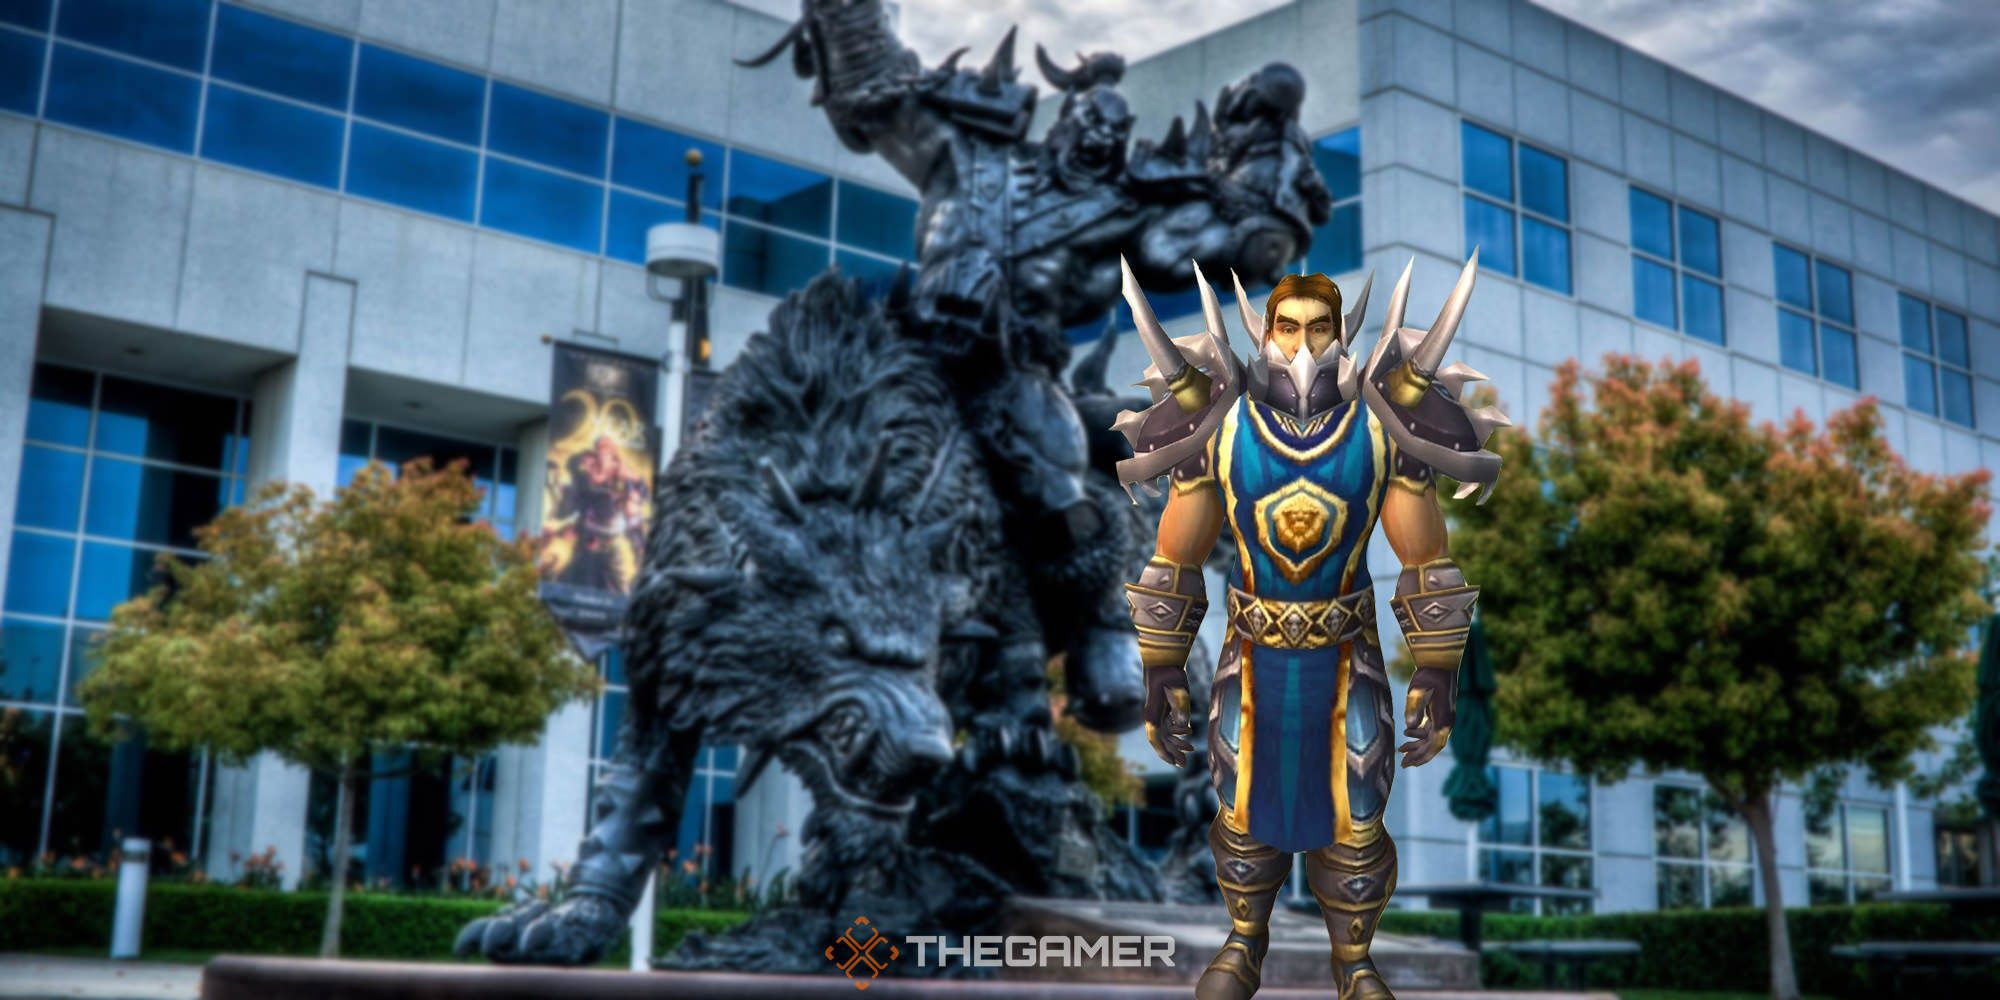 Fans Are Calling For Removal Of Alleged Abuser In World Of Warcraft